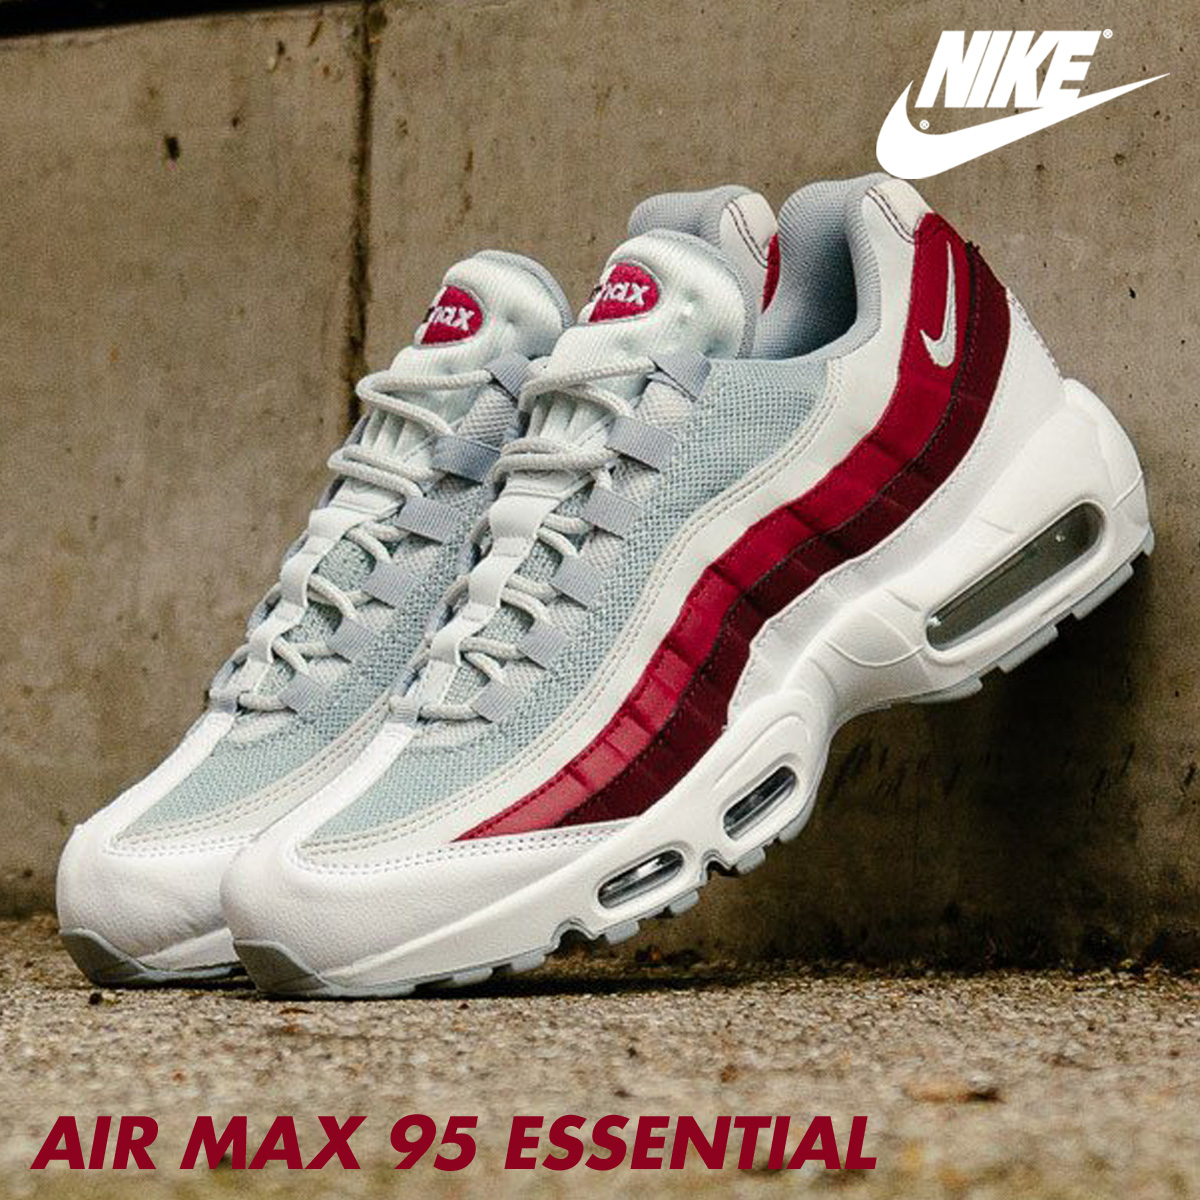 info for 37213 32b92 ... Nike NIKE Air Max 95 essential sneakers AIR MAX 95 ESSENTIAL  749,766-103 men s shoes ...